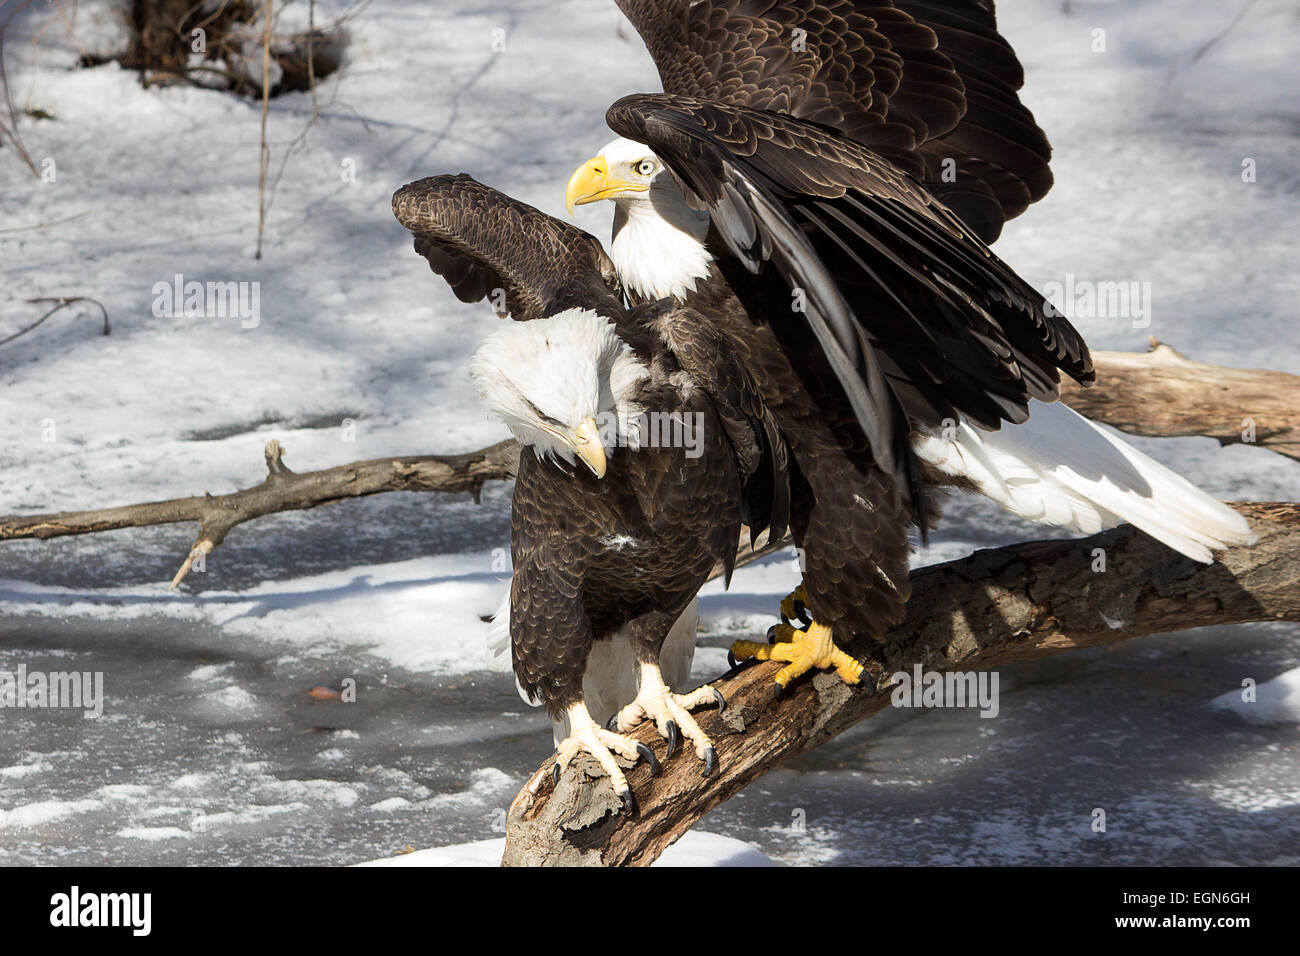 Intimidation- A younger more agressive bald eagle tries to push aside an older bald eagle on a branch - Stock Image